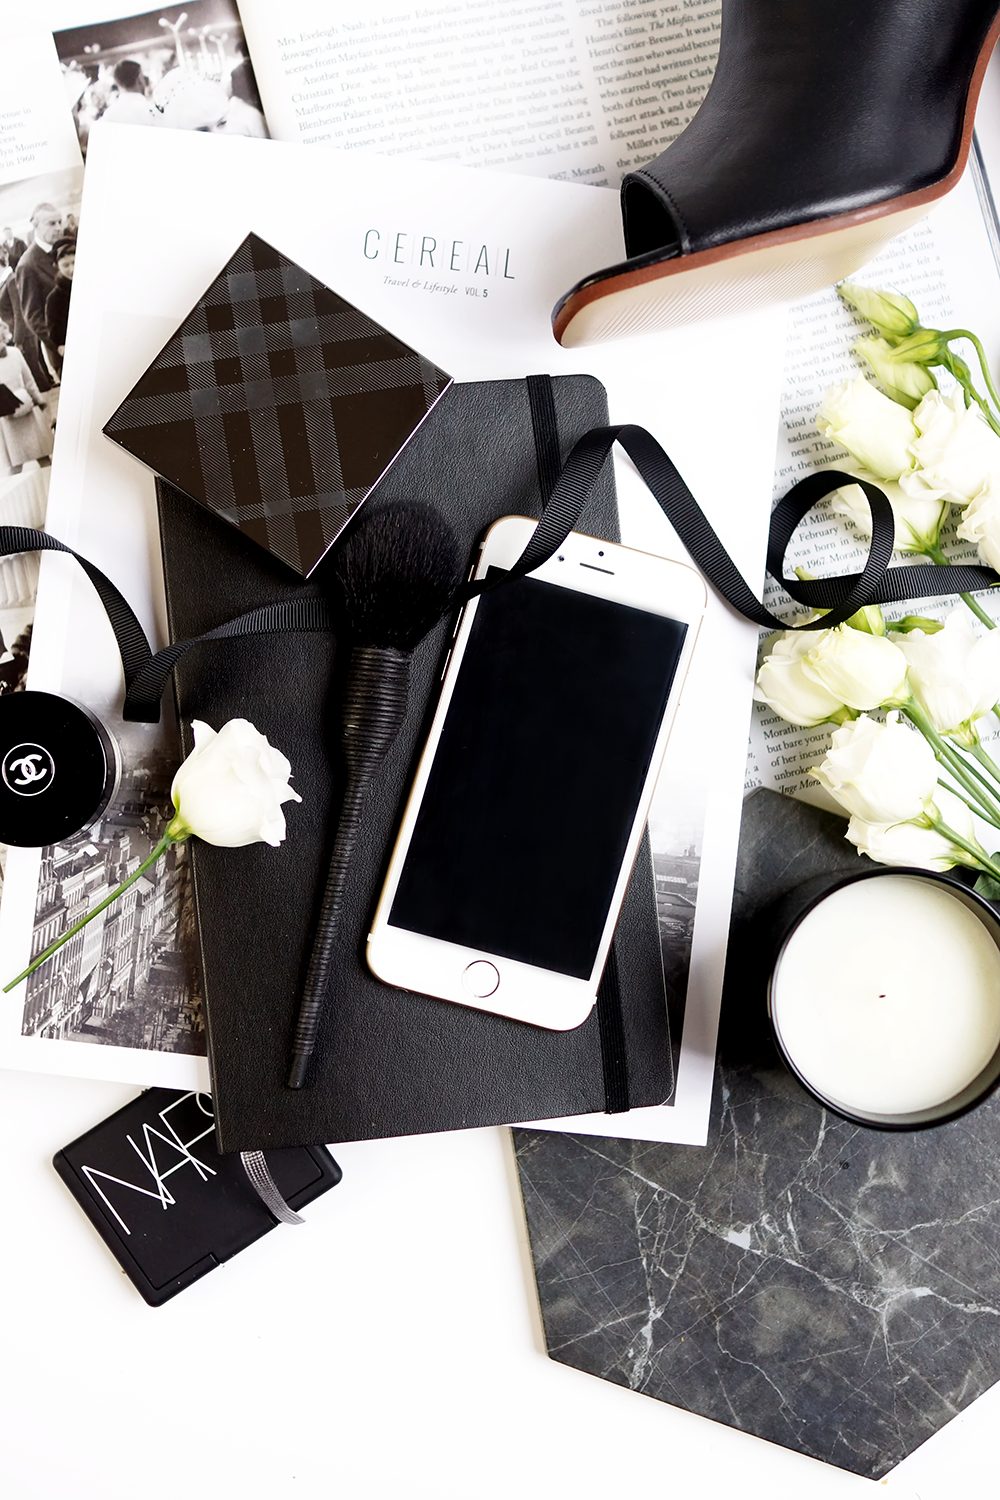 barely-there-beauty-flatlay-photography-blog-style-lifestyle-digital-detox